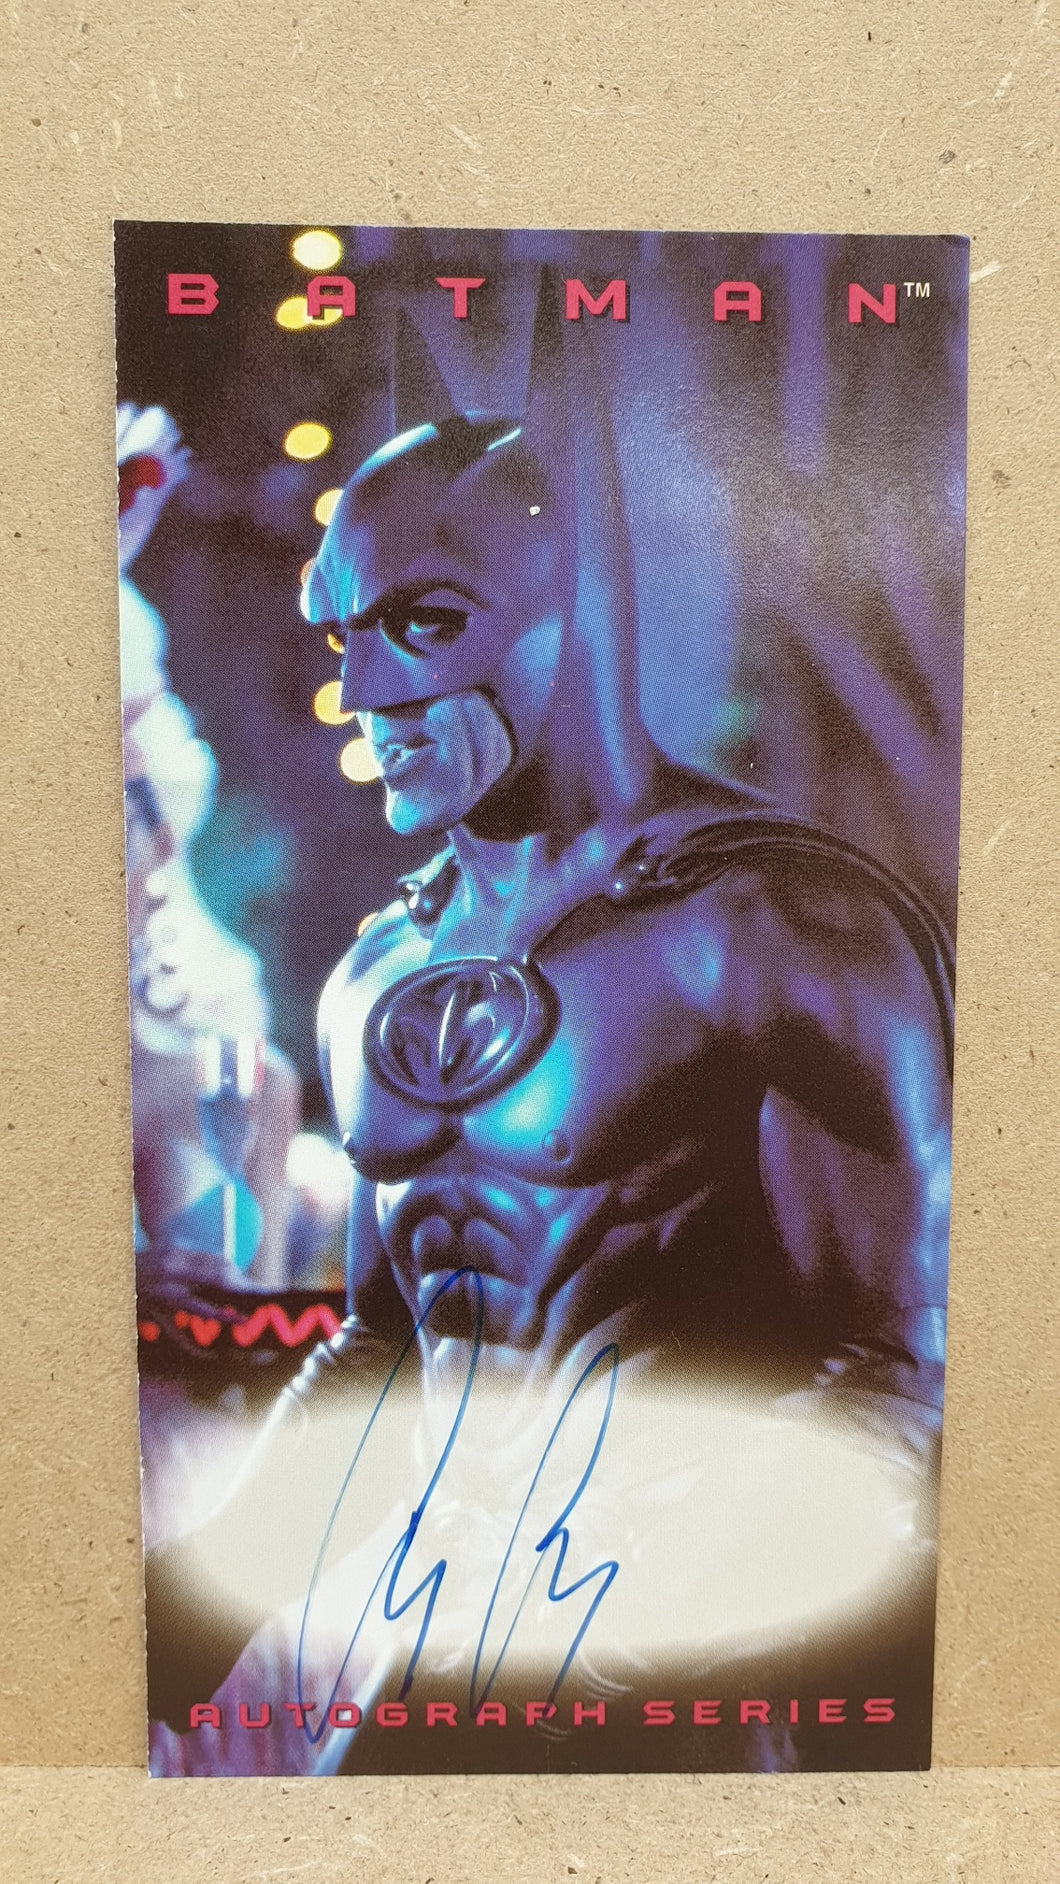 Autographed Trading Card: Batman/George Clooney